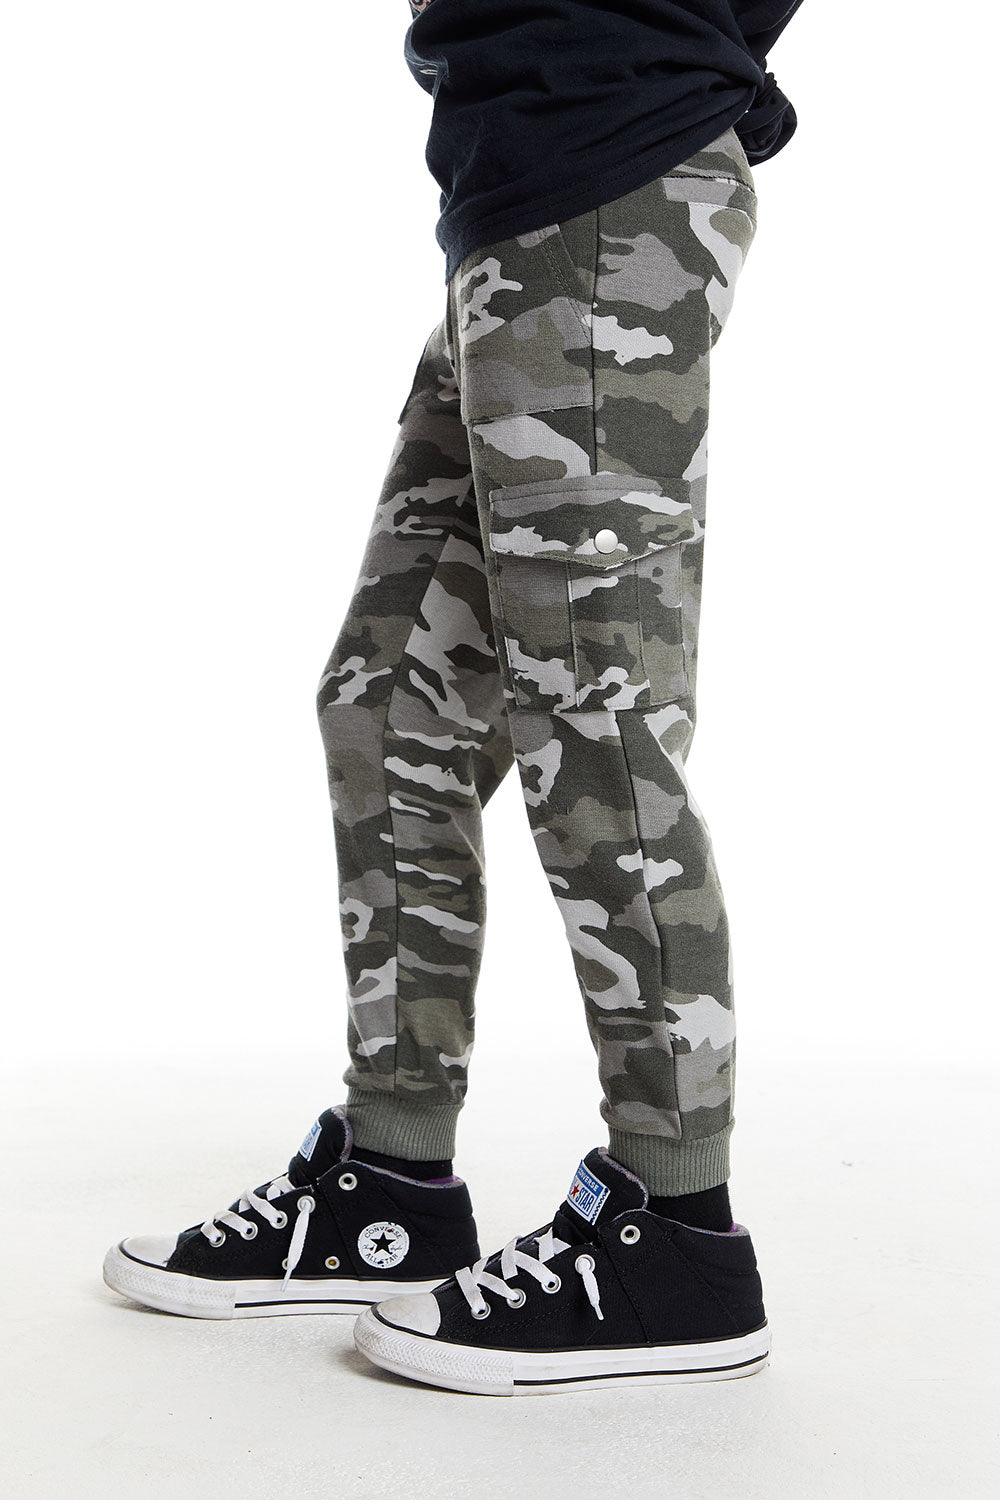 Boys Love Knit Cargo Jogger with Rib BOYS chaserbrand4.myshopify.com